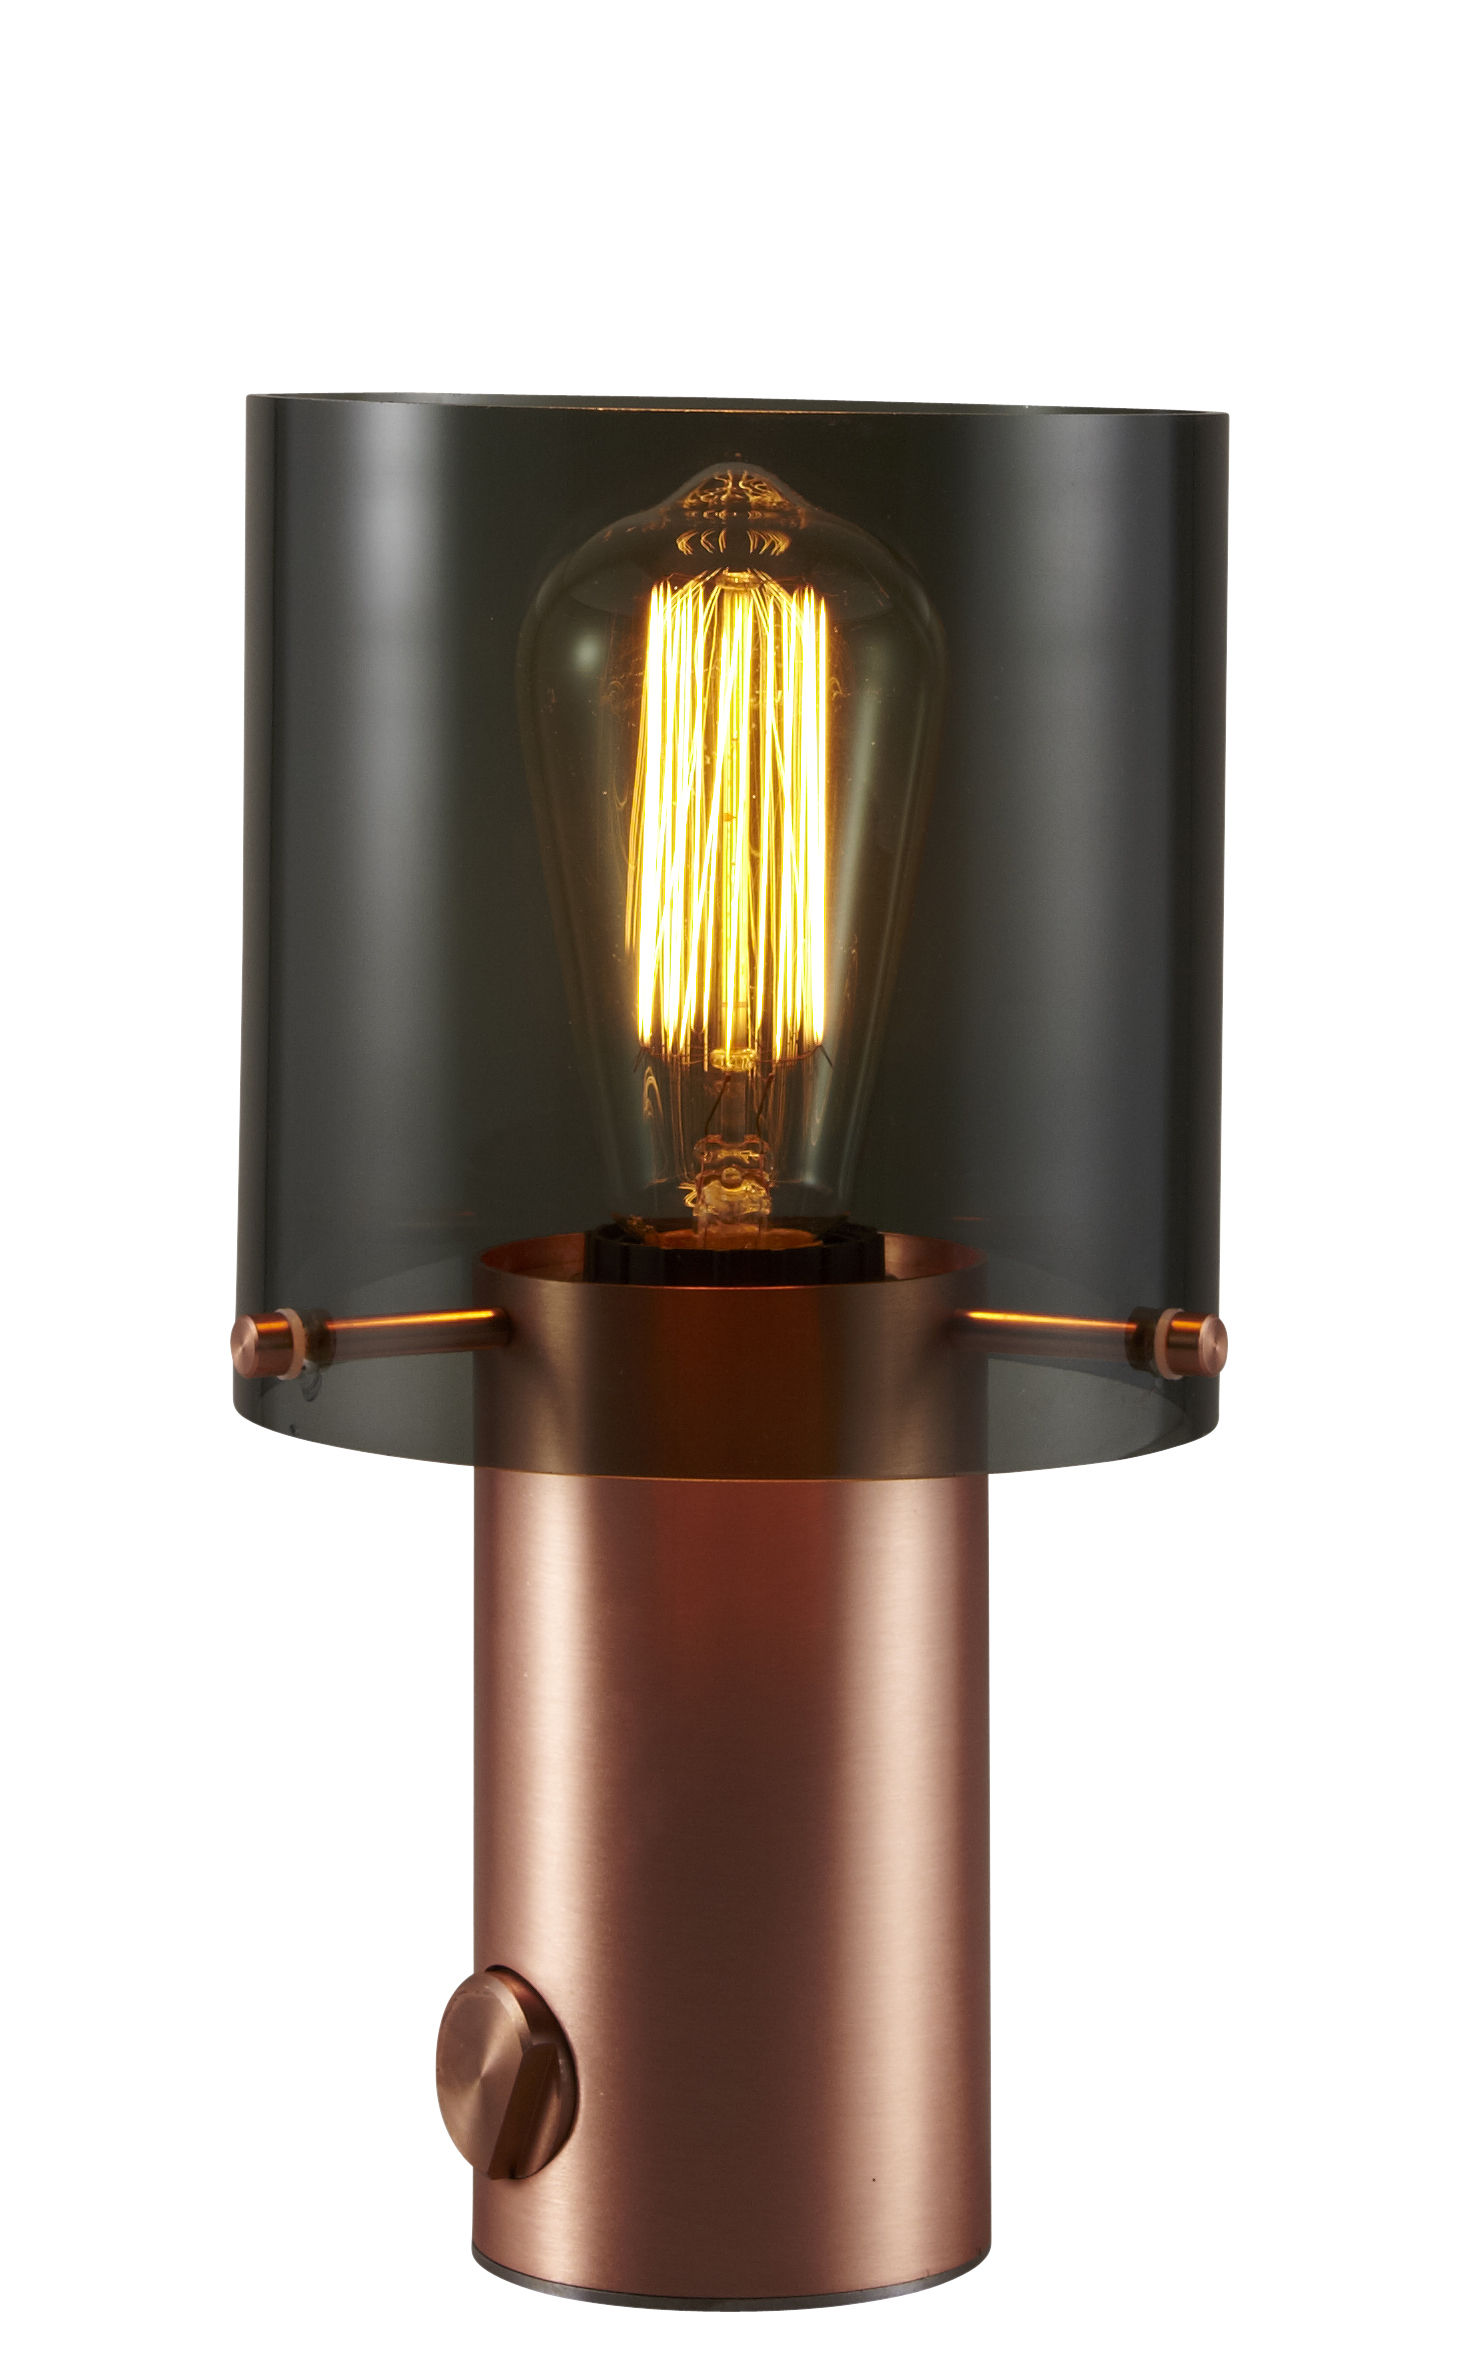 Lighting - Table Lamps - Walter 1 Table lamp - H 27 cm - Dimmer by Original BTC - Anthracite glass & Copper - Glass, Satined copper